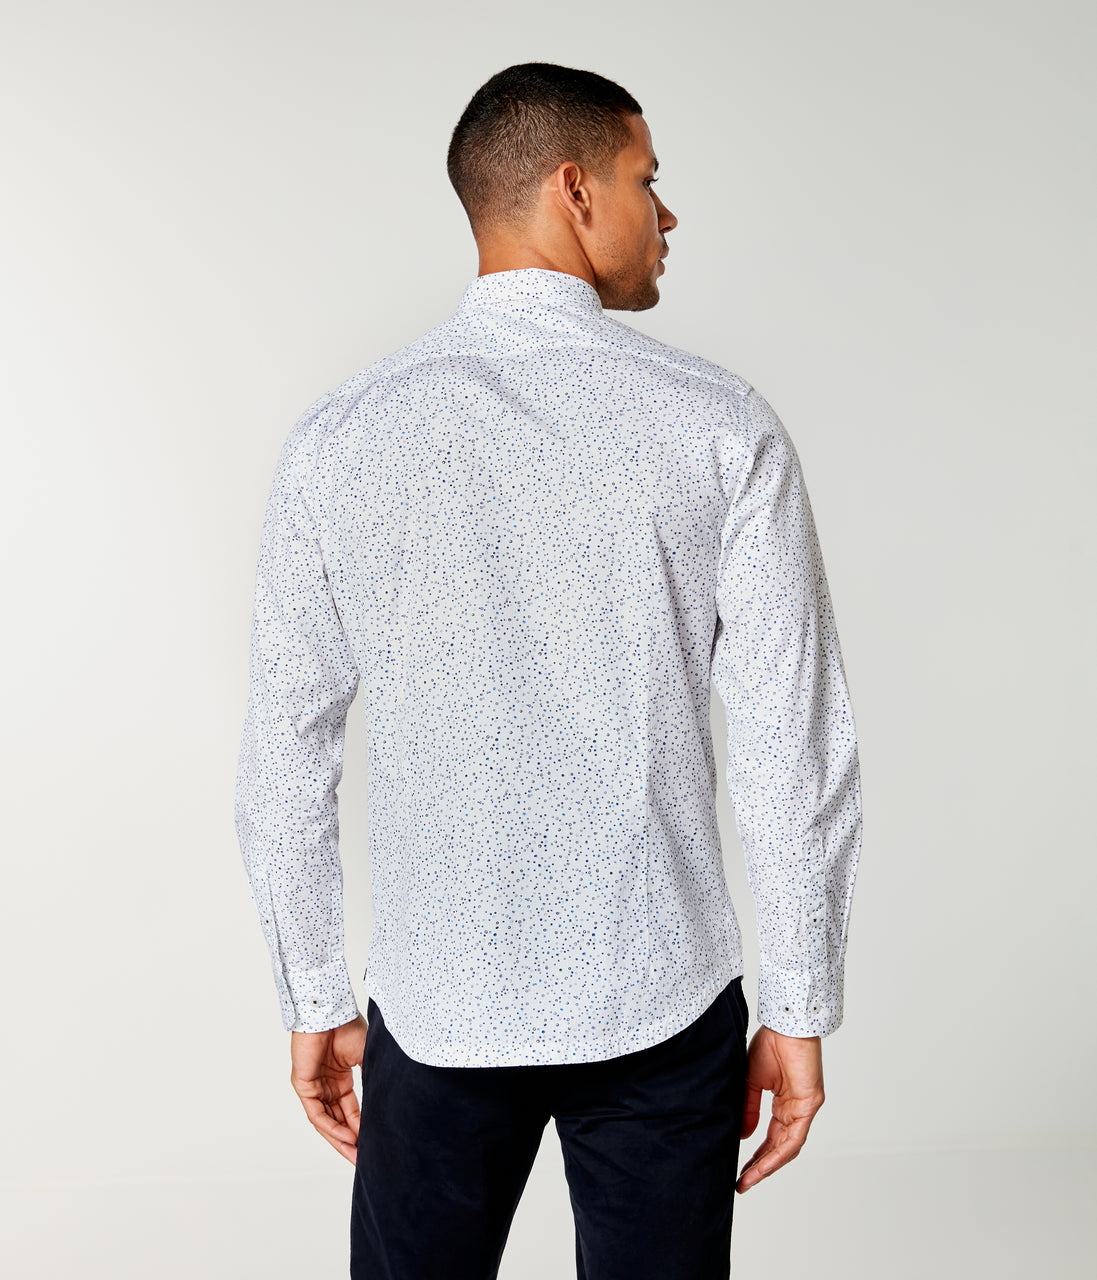 On-Point Print Shirt - White Micro Dot - Good Man Brand - On-Point Print Shirt - White Micro Dot